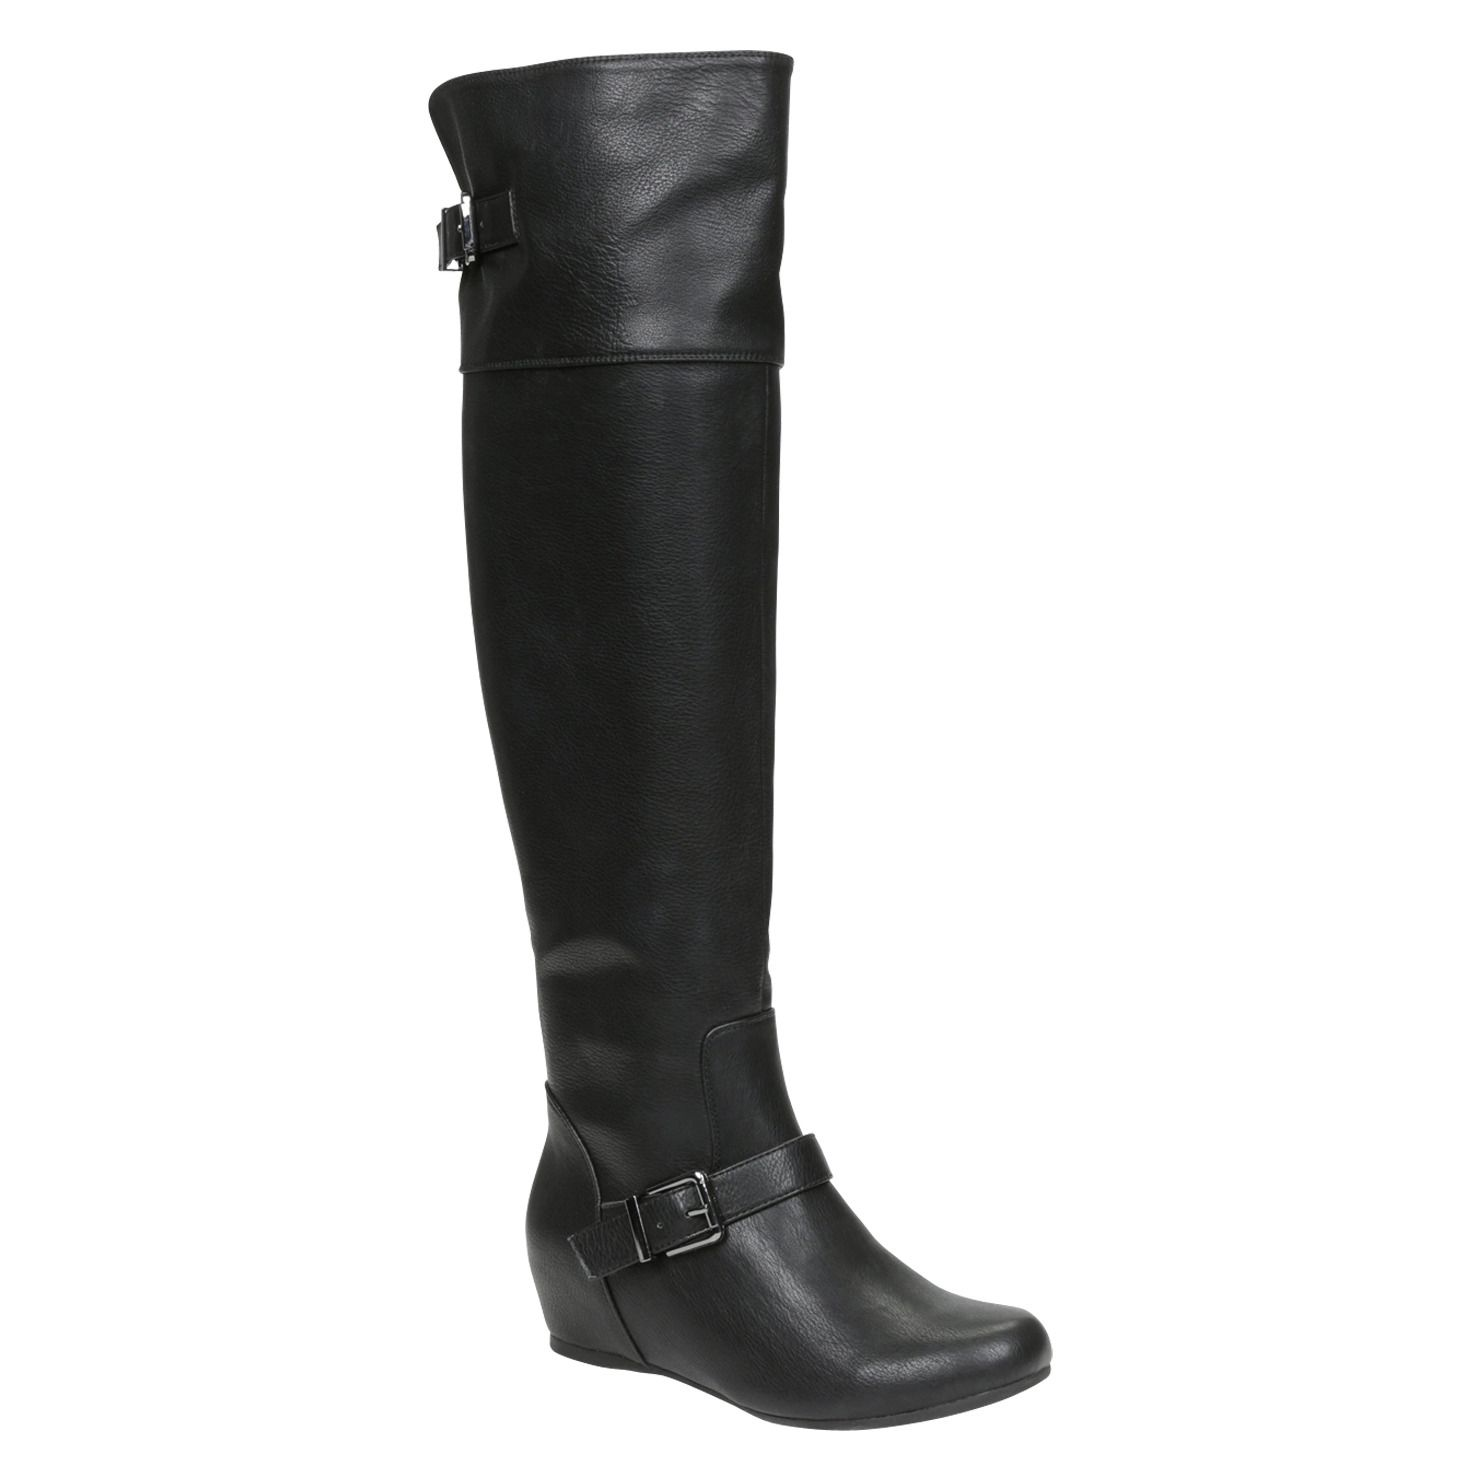 3a2105b4e26 TASHA - women s tall boots boots for sale at ALDO Shoes. YES in BLACK TOO.  I need a good to go black boot.